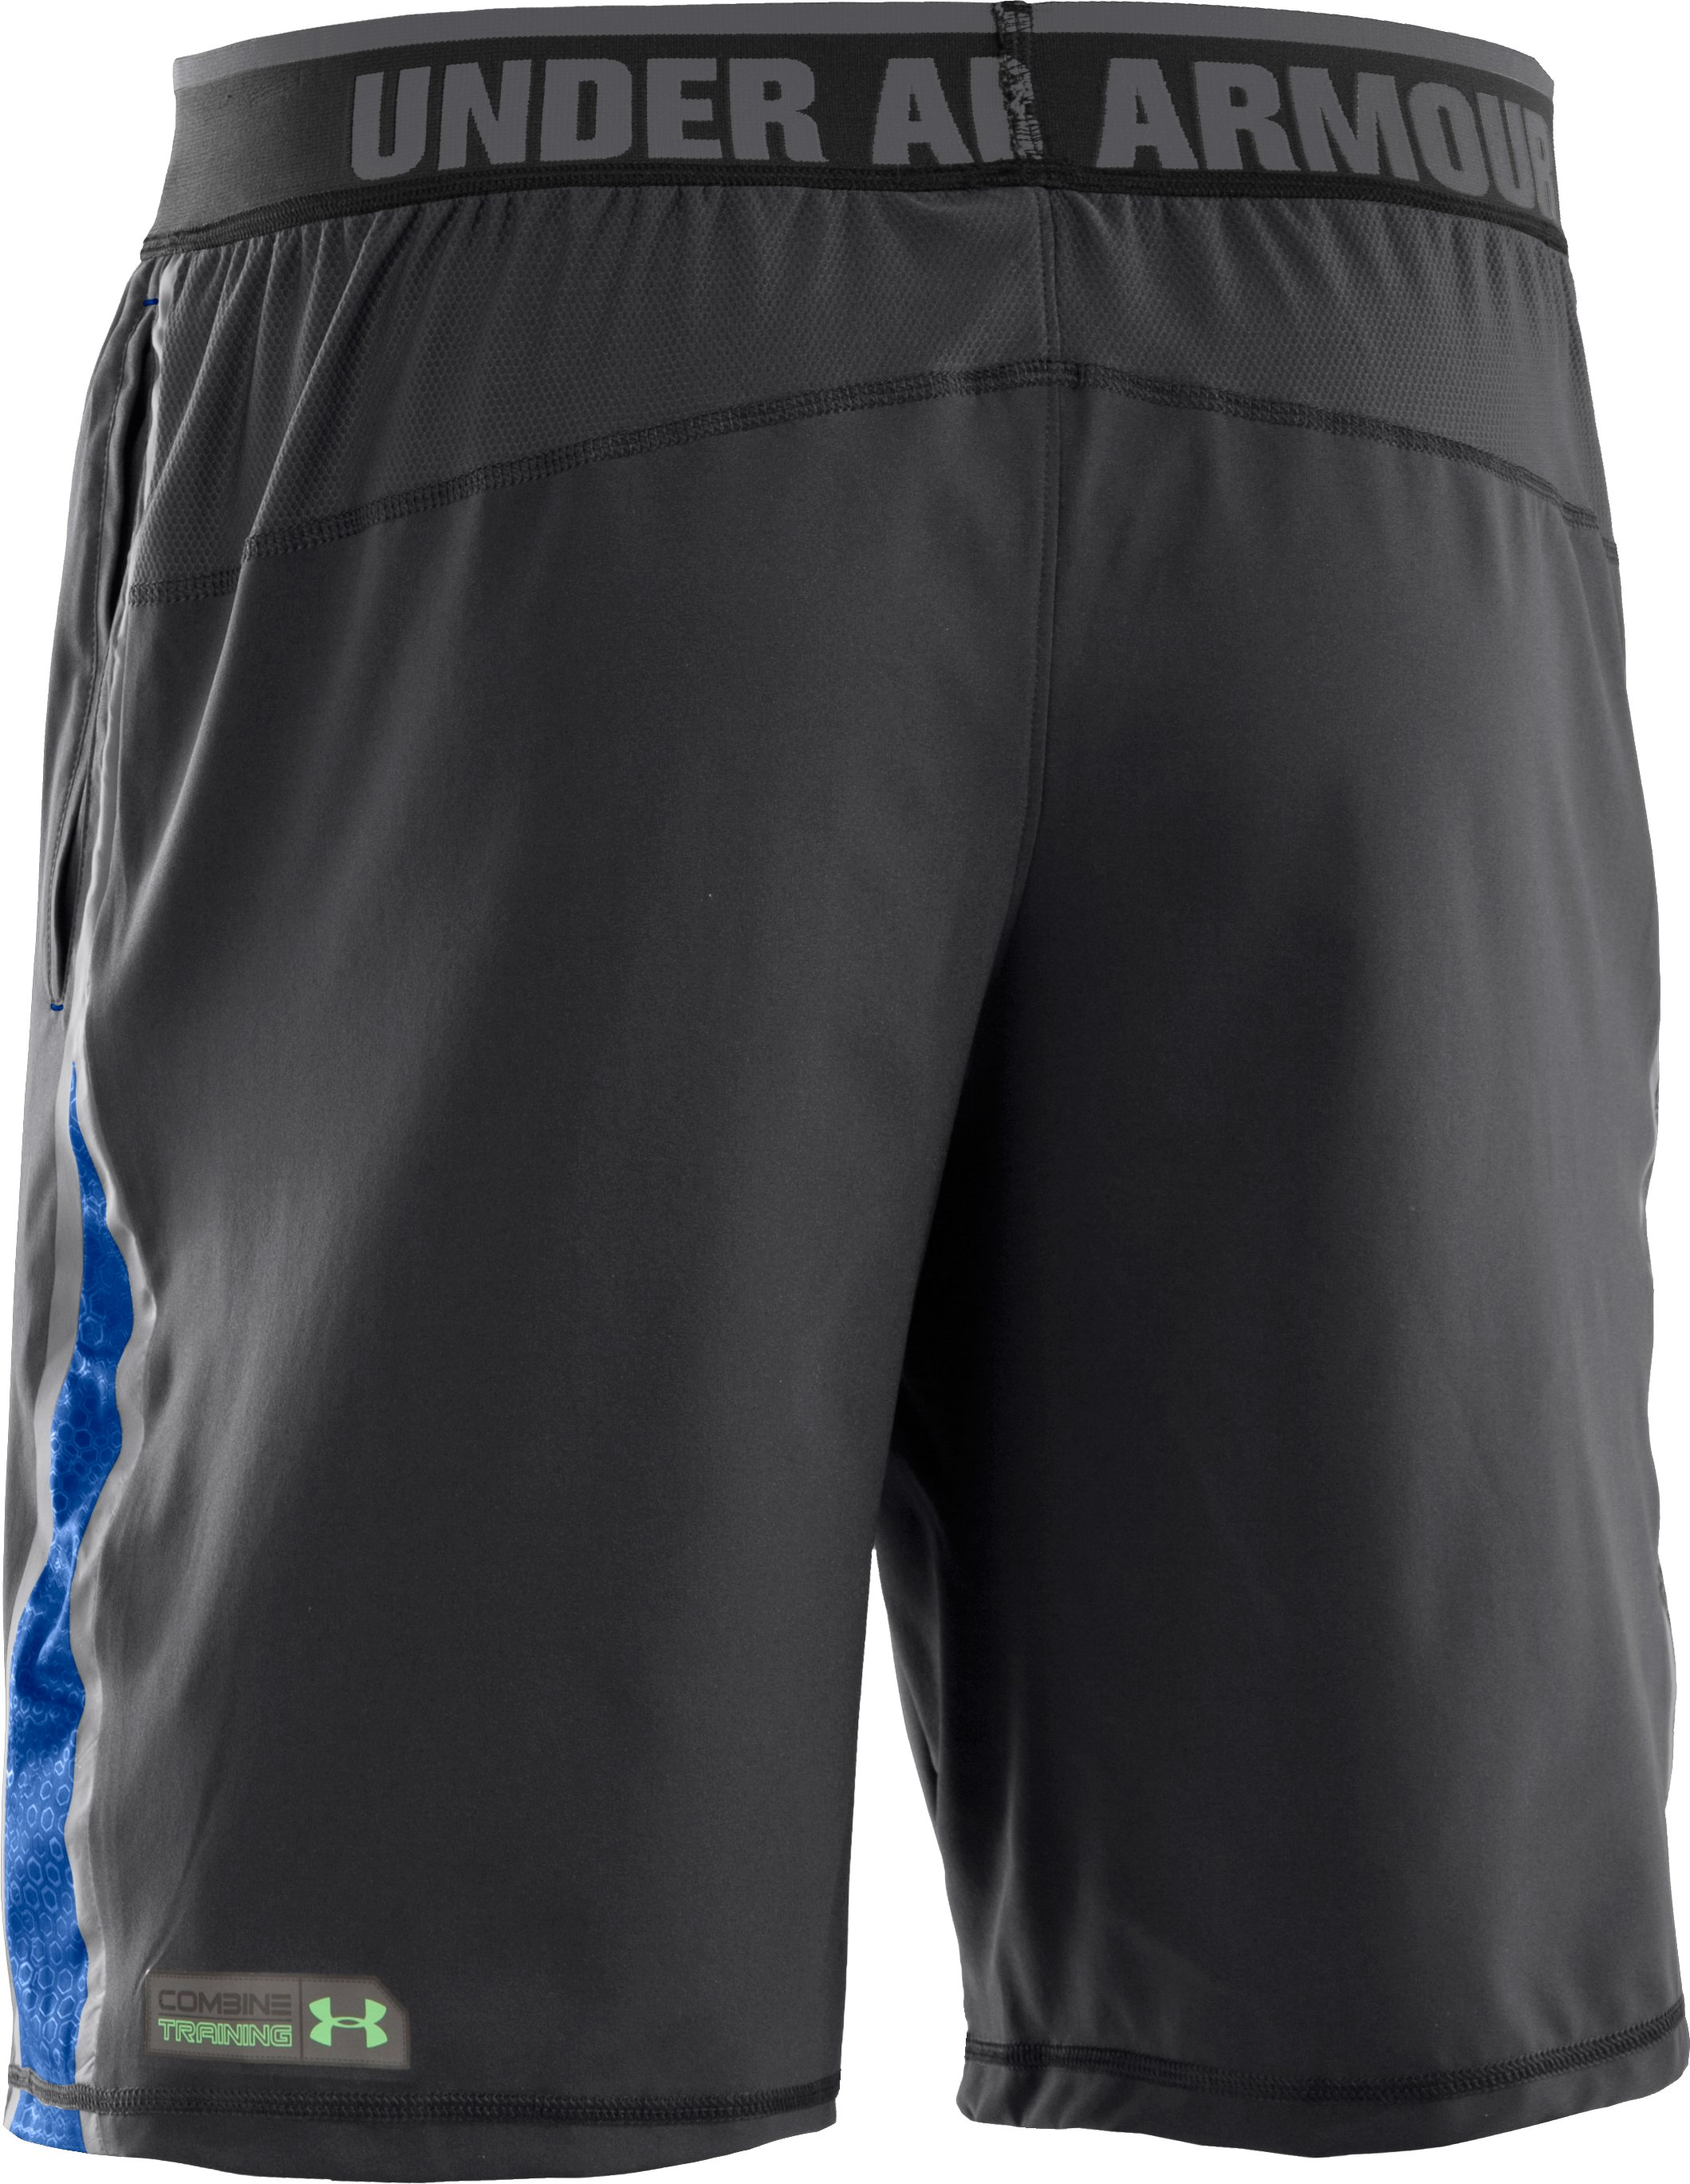 Men's UA Combine® Training Accelerant Shorts, Graphite